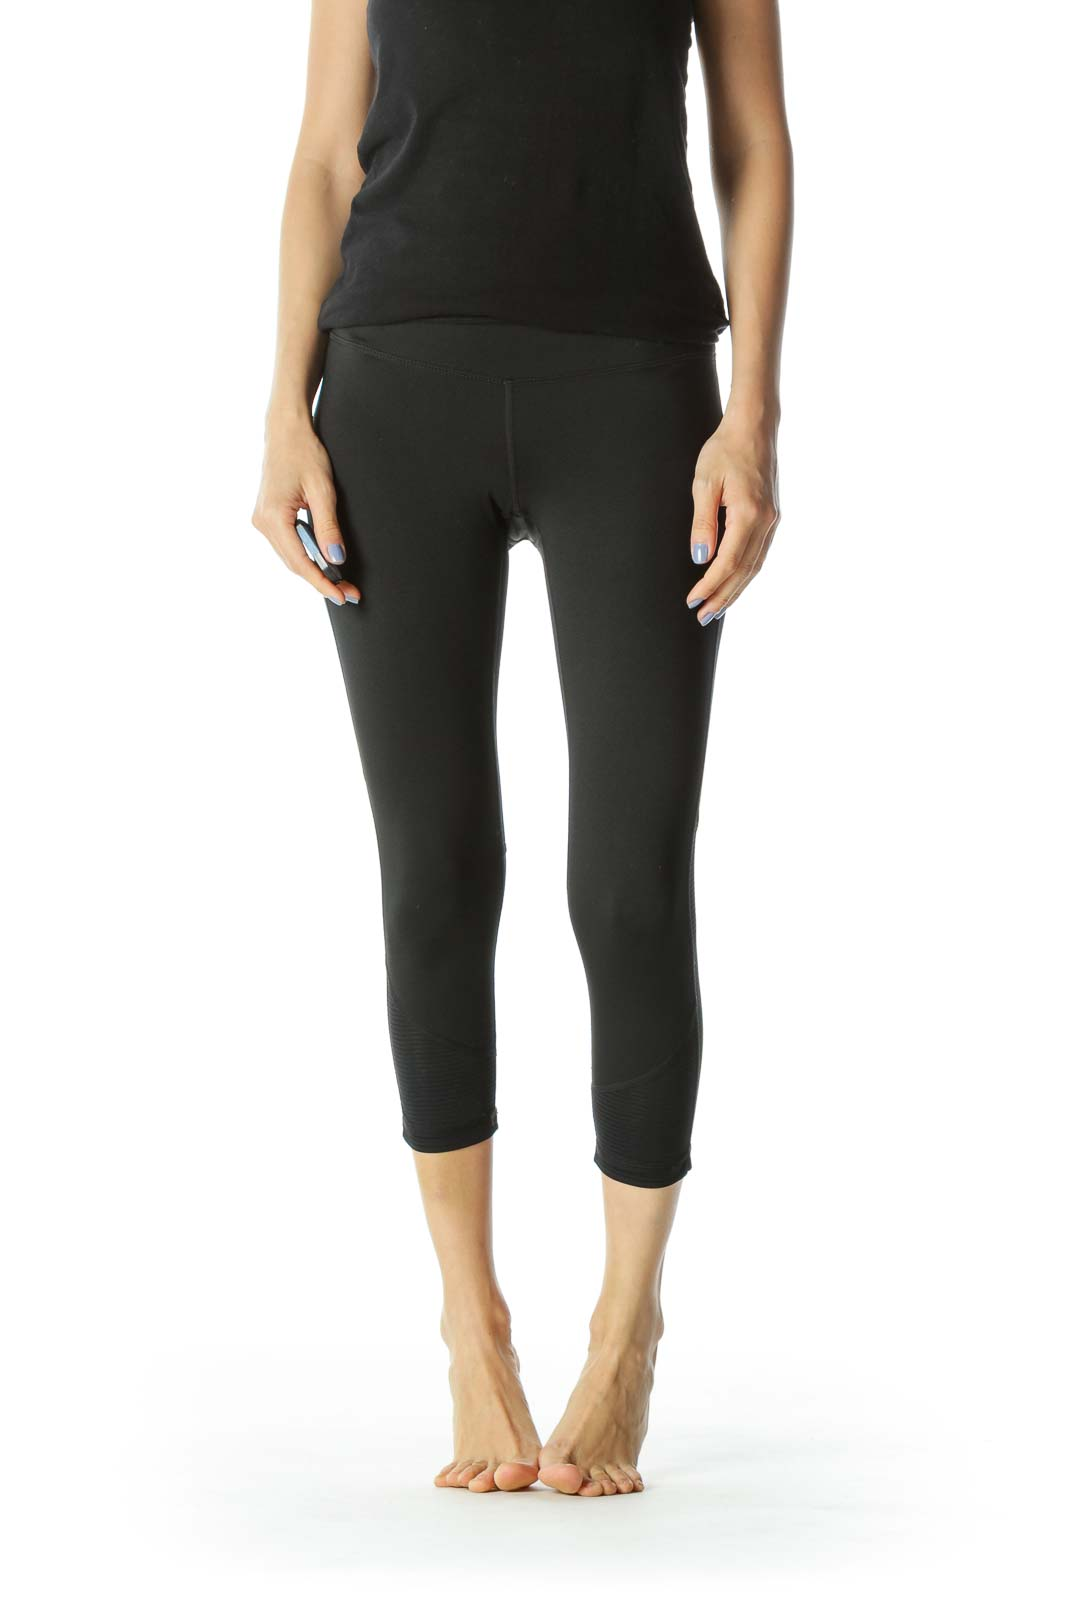 Black Stretch Sheer Leg Detail Activewear Leggings